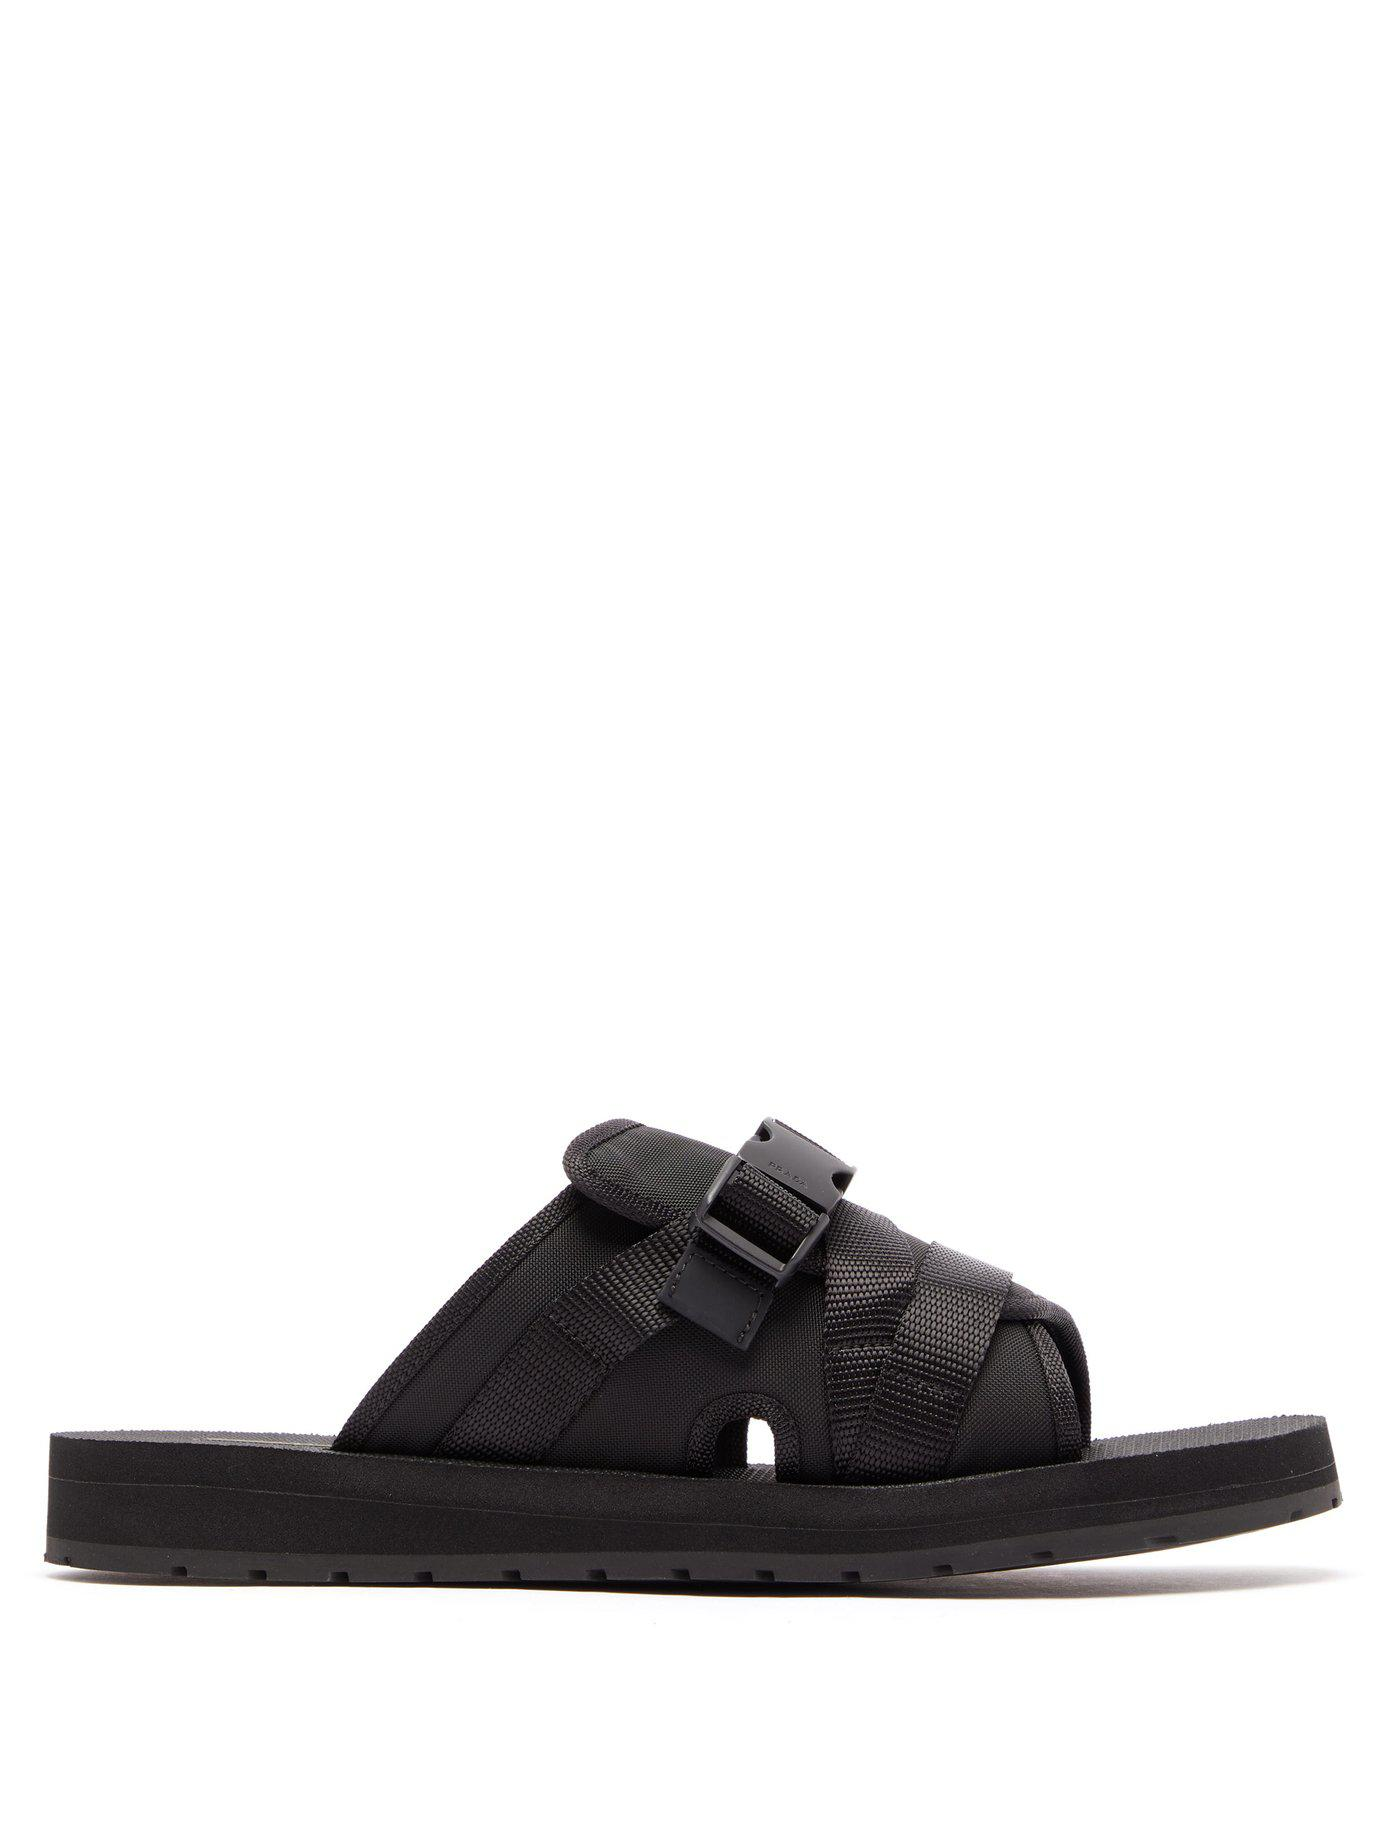 2e3164522886a4 Lyst - Prada Buckle Open-toe Sandals in Black for Men - Save 48%